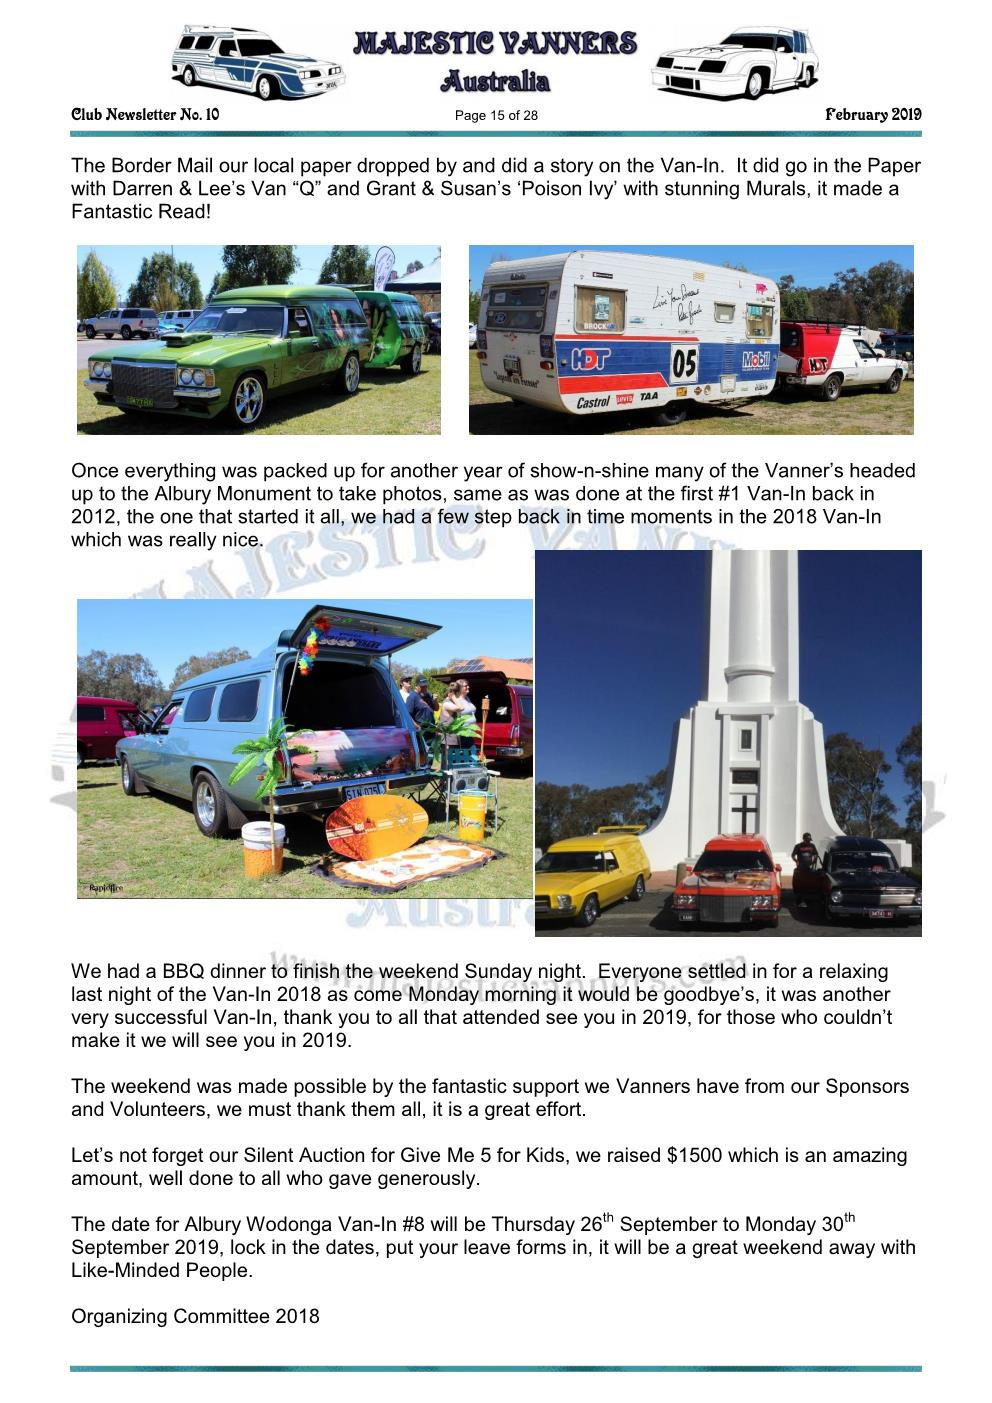 MAJESTIC VANNERS Newsletter Issue No: 10 February 2019 Mv_new23